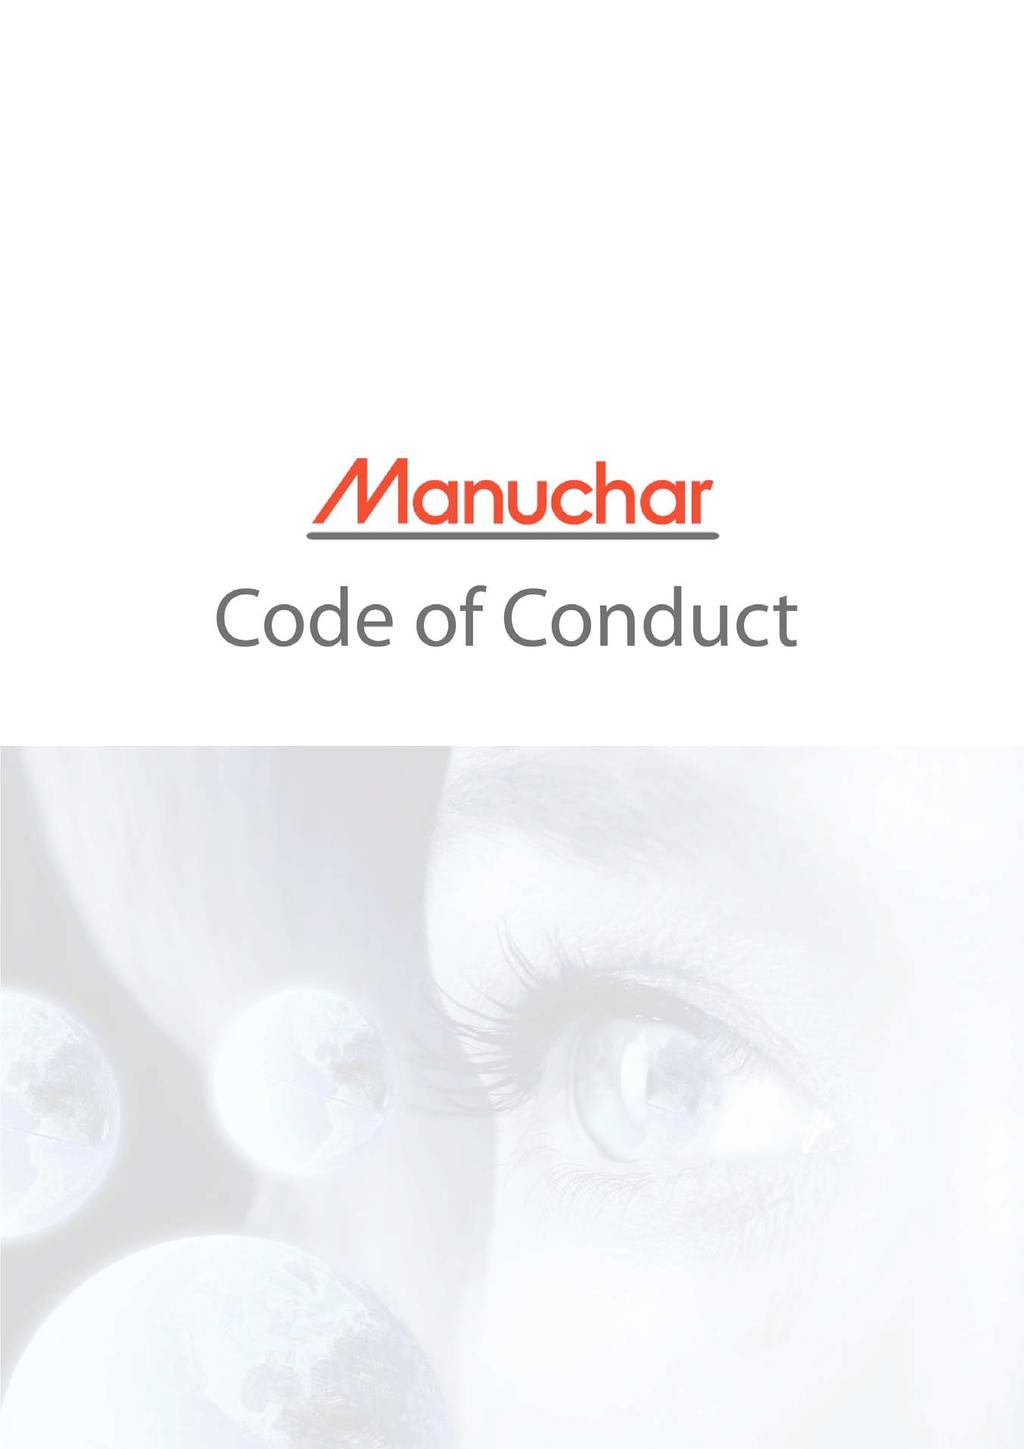 Manuchar Group